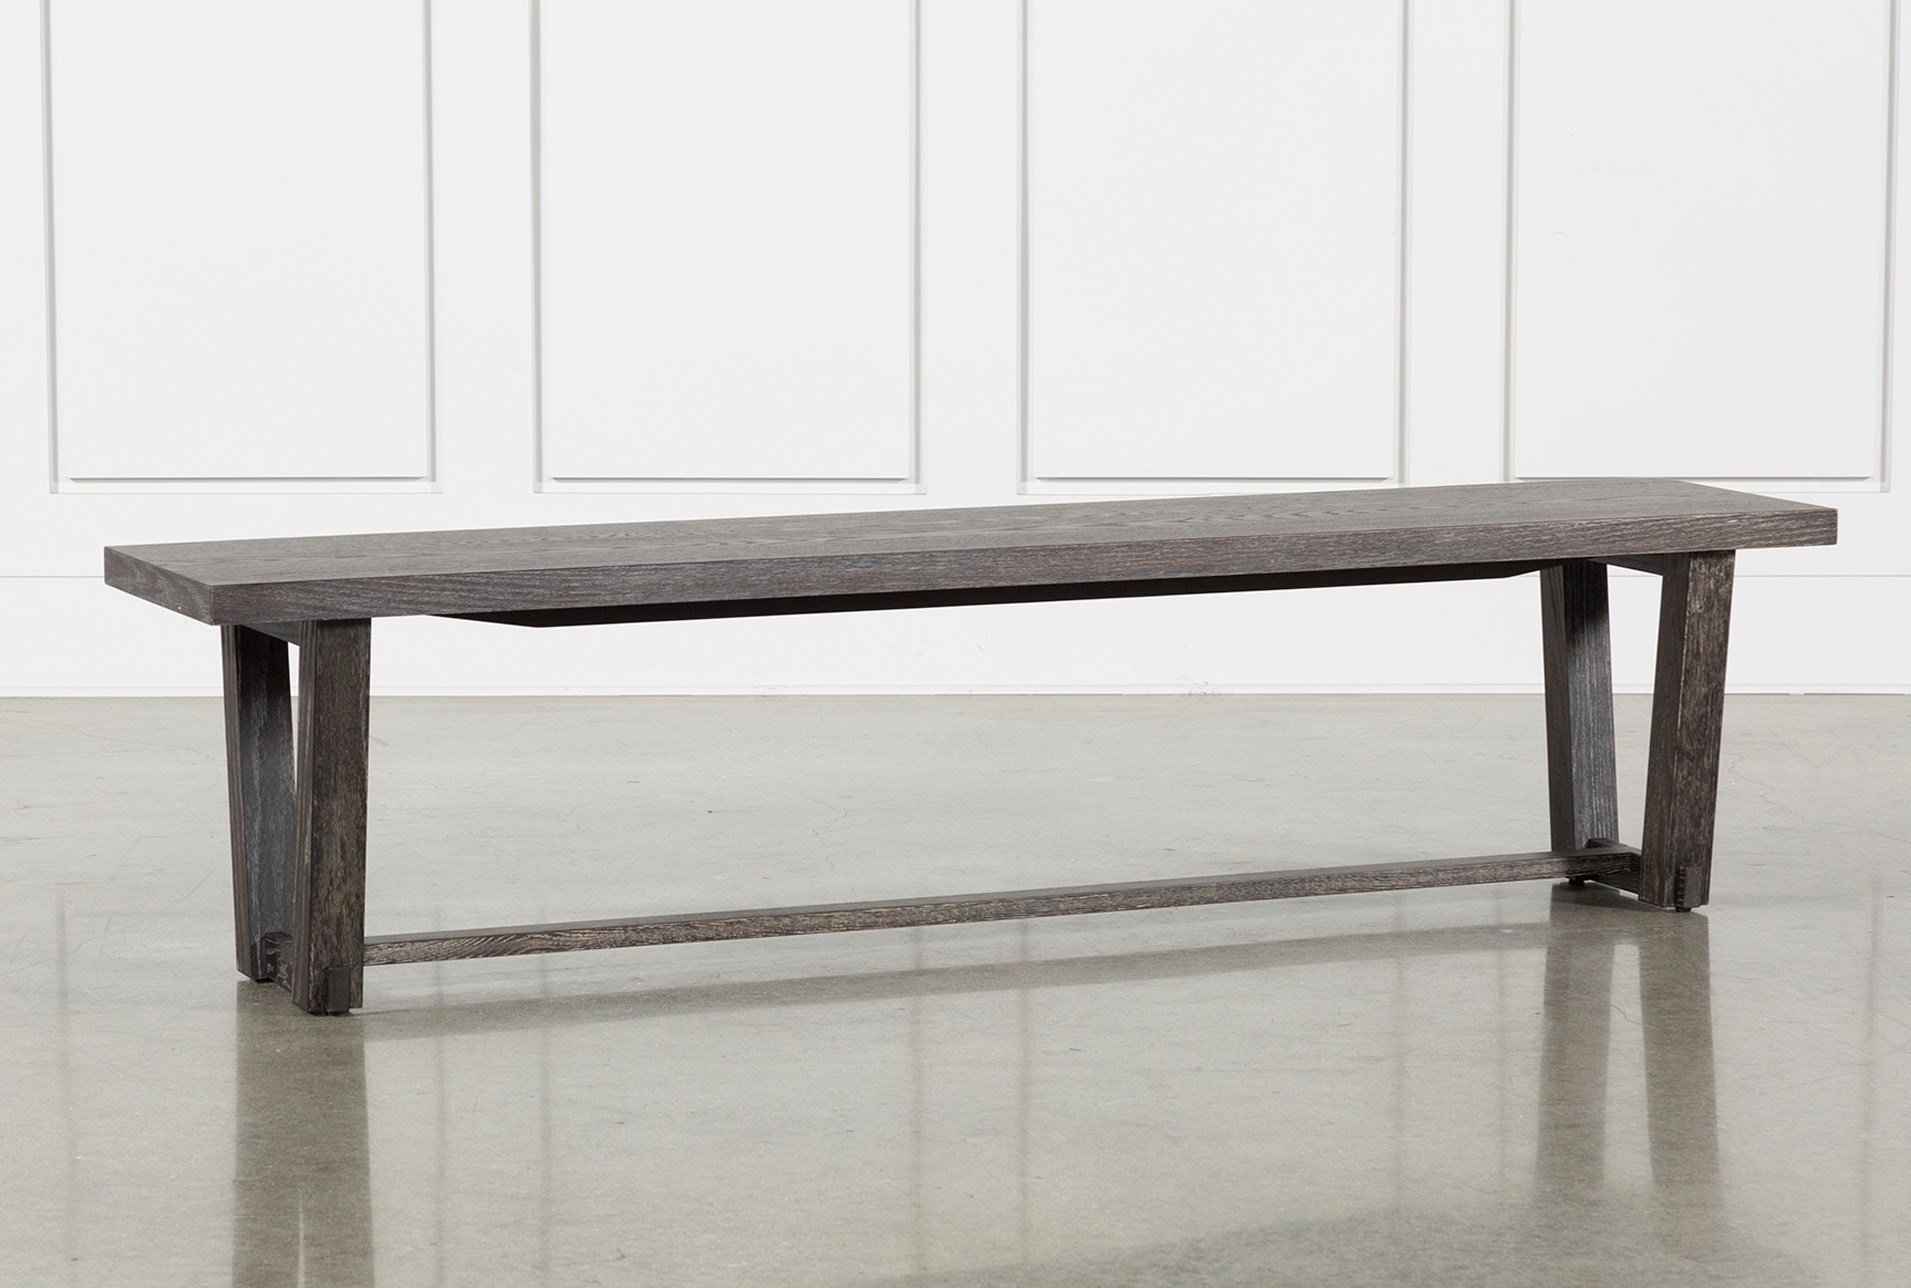 Bale rustic grey dining bench qty 1 has been successfully added to your cart